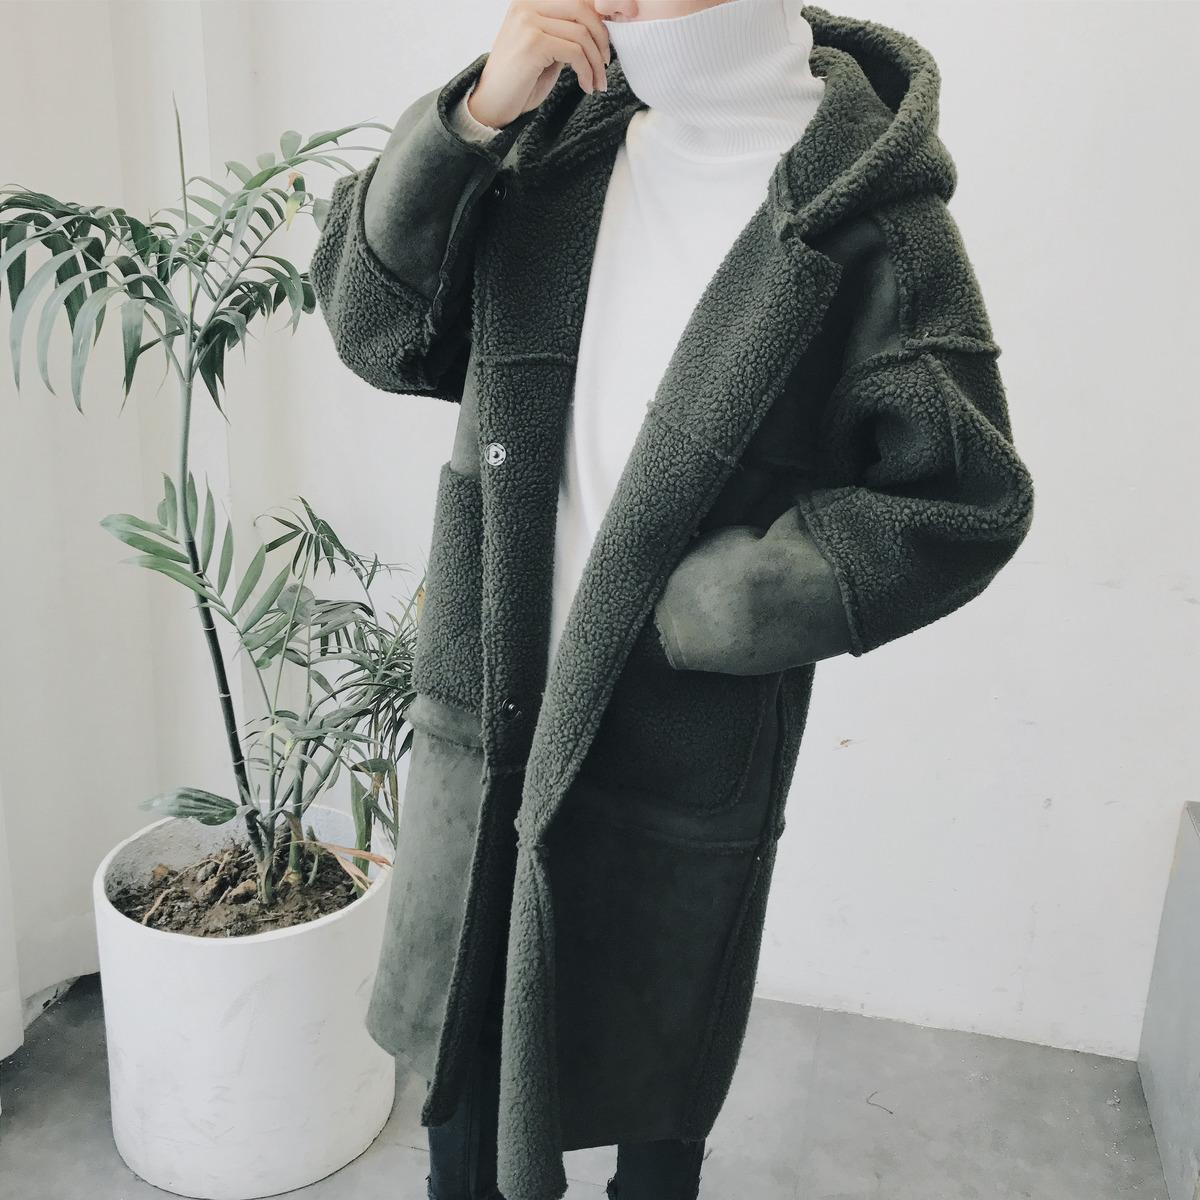 58005a6f902d 2019 2017 Winter New Chic Smiple Male Wool Blend Deerskin Lamb Mao Lovers  Clothes Loose High Quality Warm Pure Color Long Coats S 2xl From Hongyeli,  ...